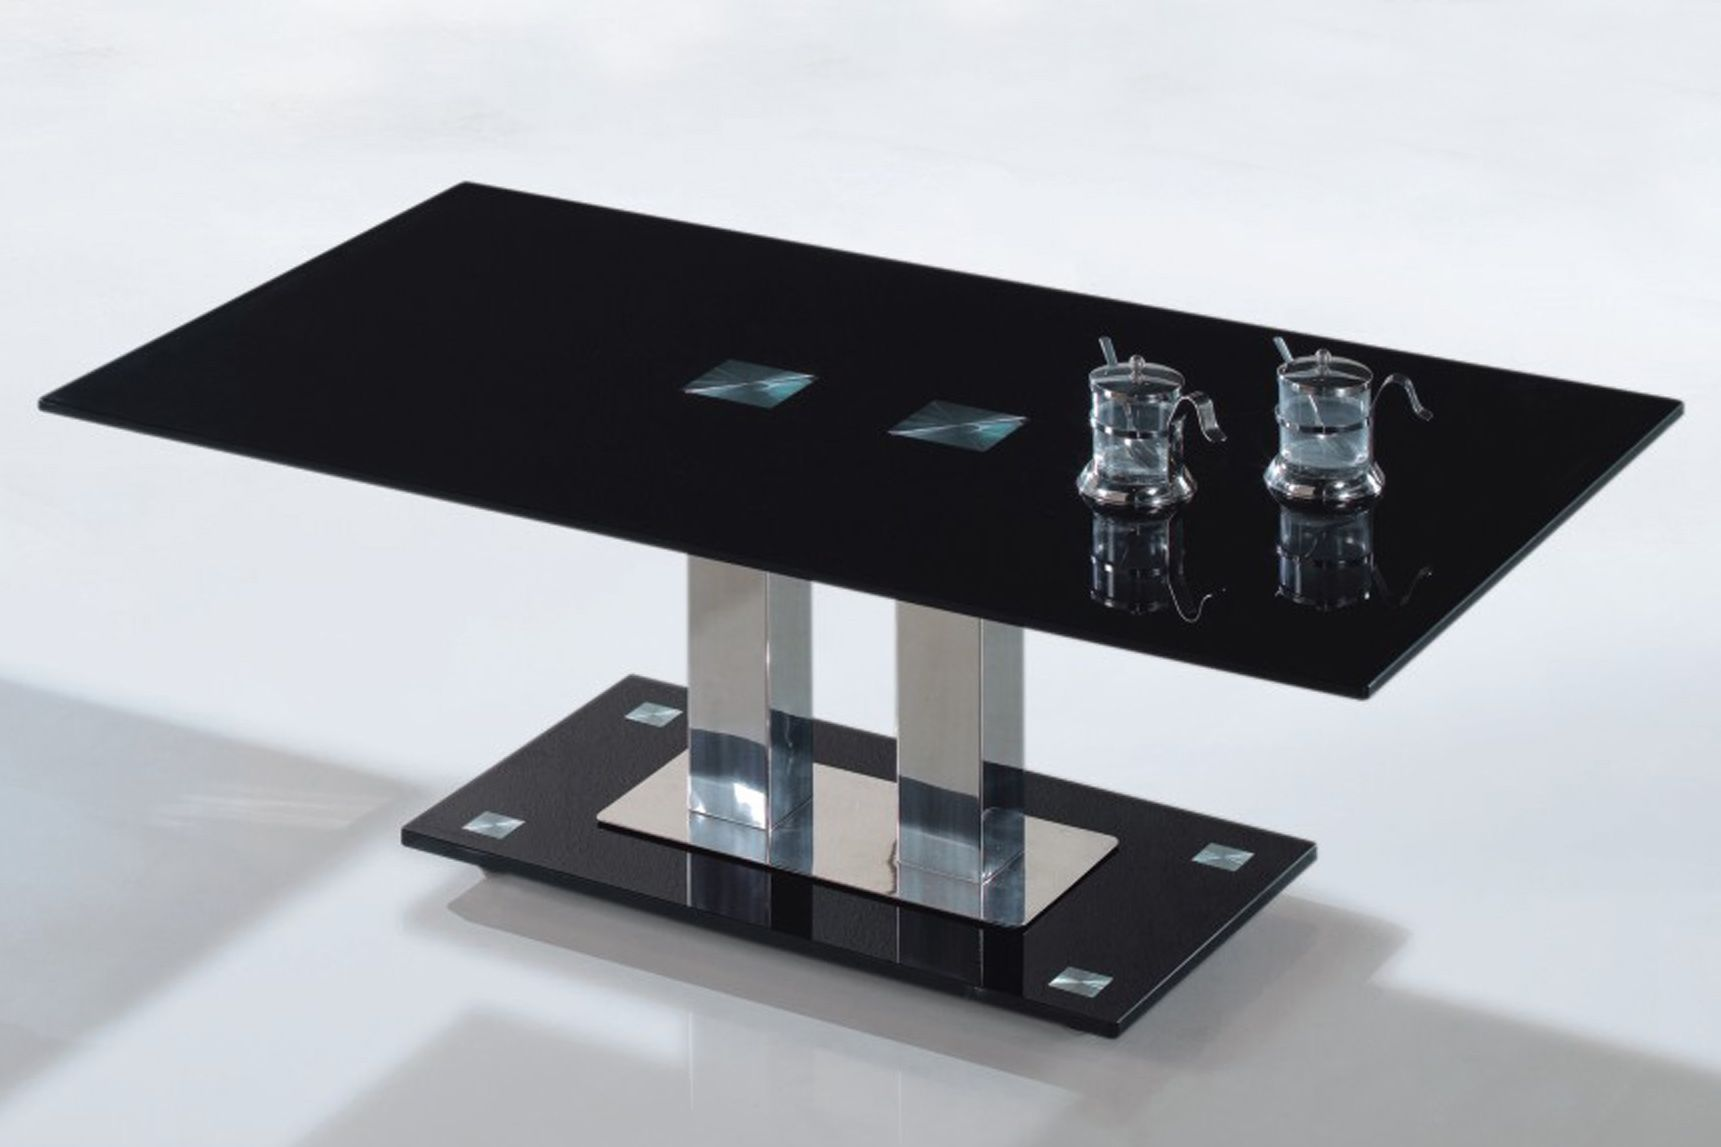 Black Glass Tables modern black glass coffee table, lignite modern black oak coffee